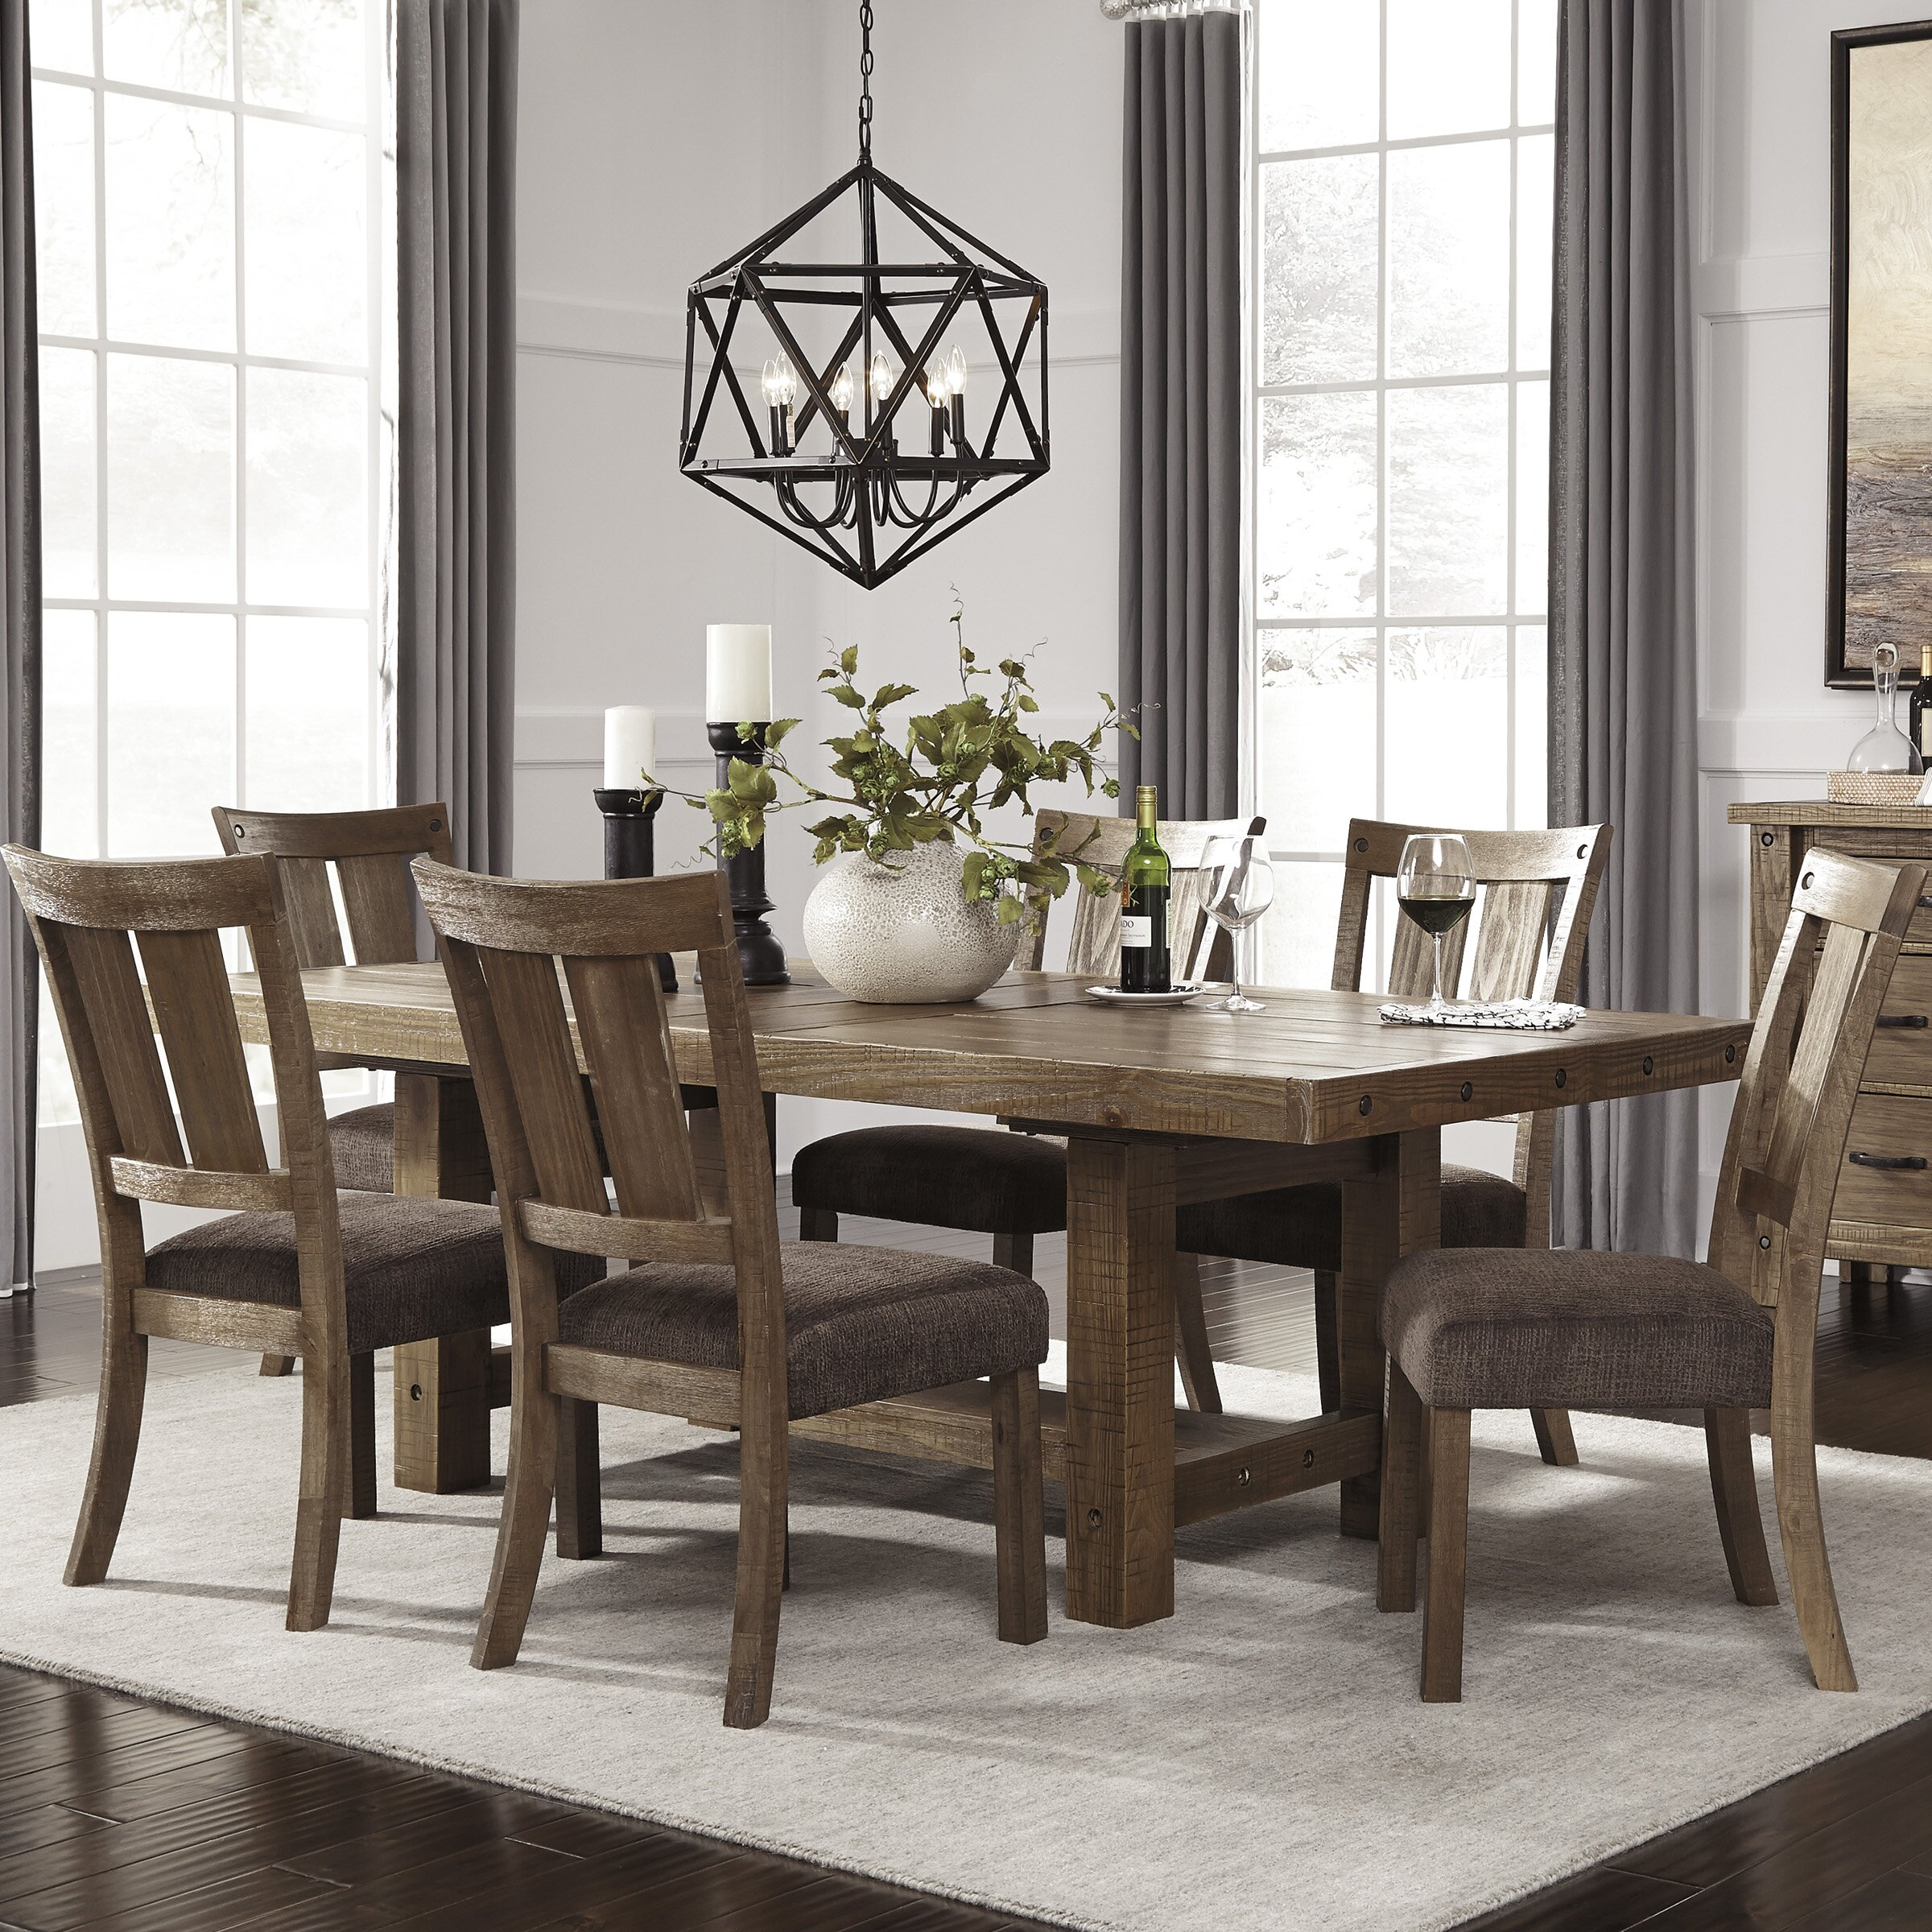 Signature design by ashley 7 piece dining set reviews for Kitchen dining sets on sale